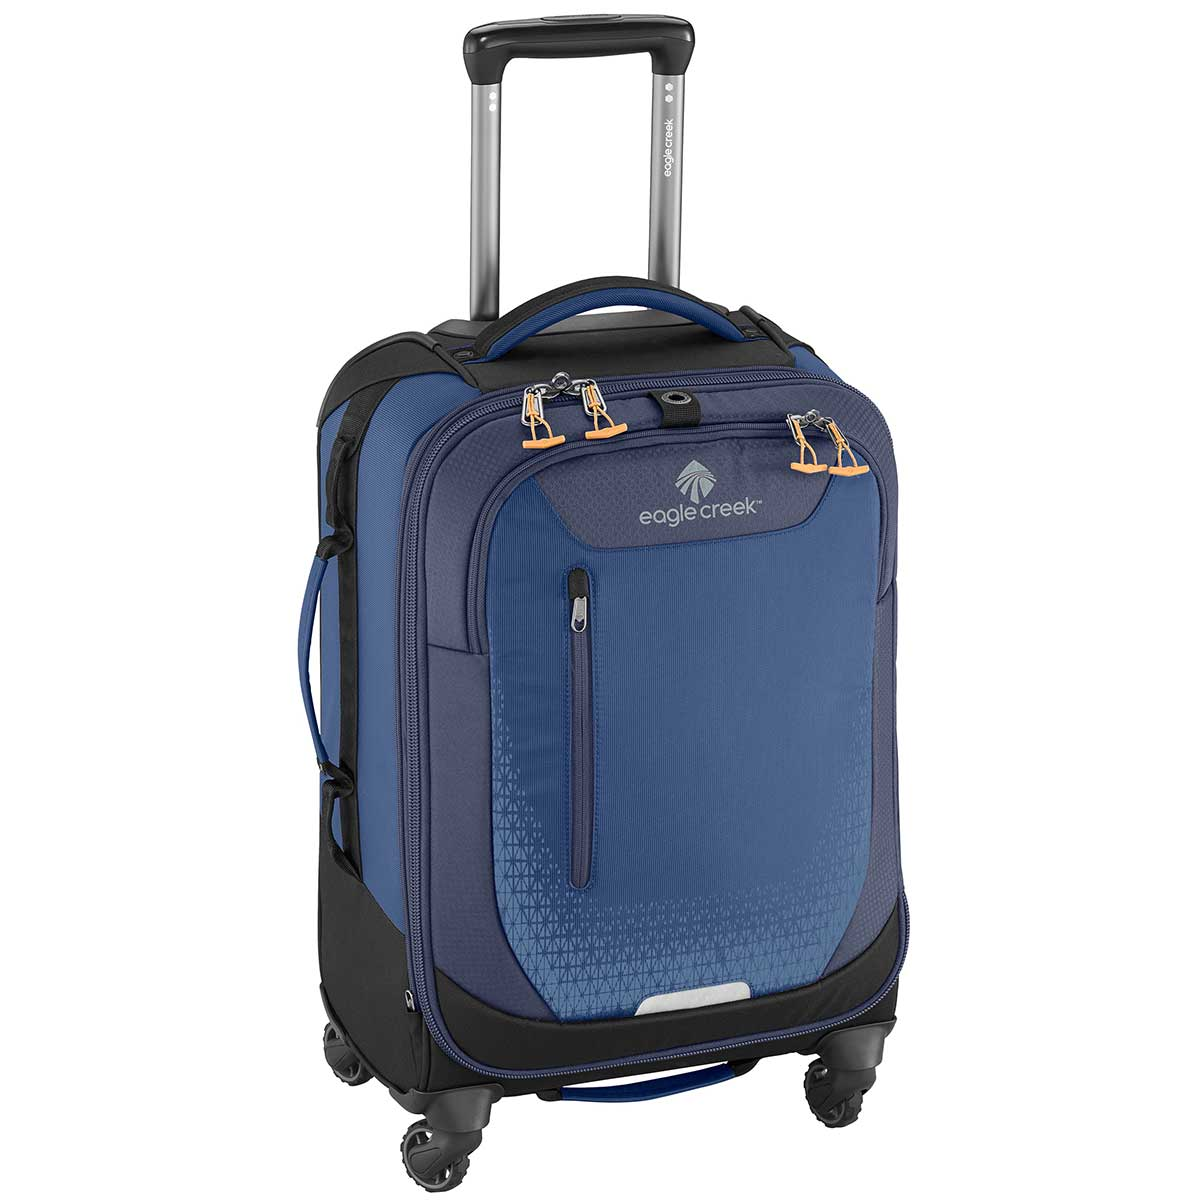 Eagle Creek Expanse AWD Carry-On Luggage in Twilight Blue